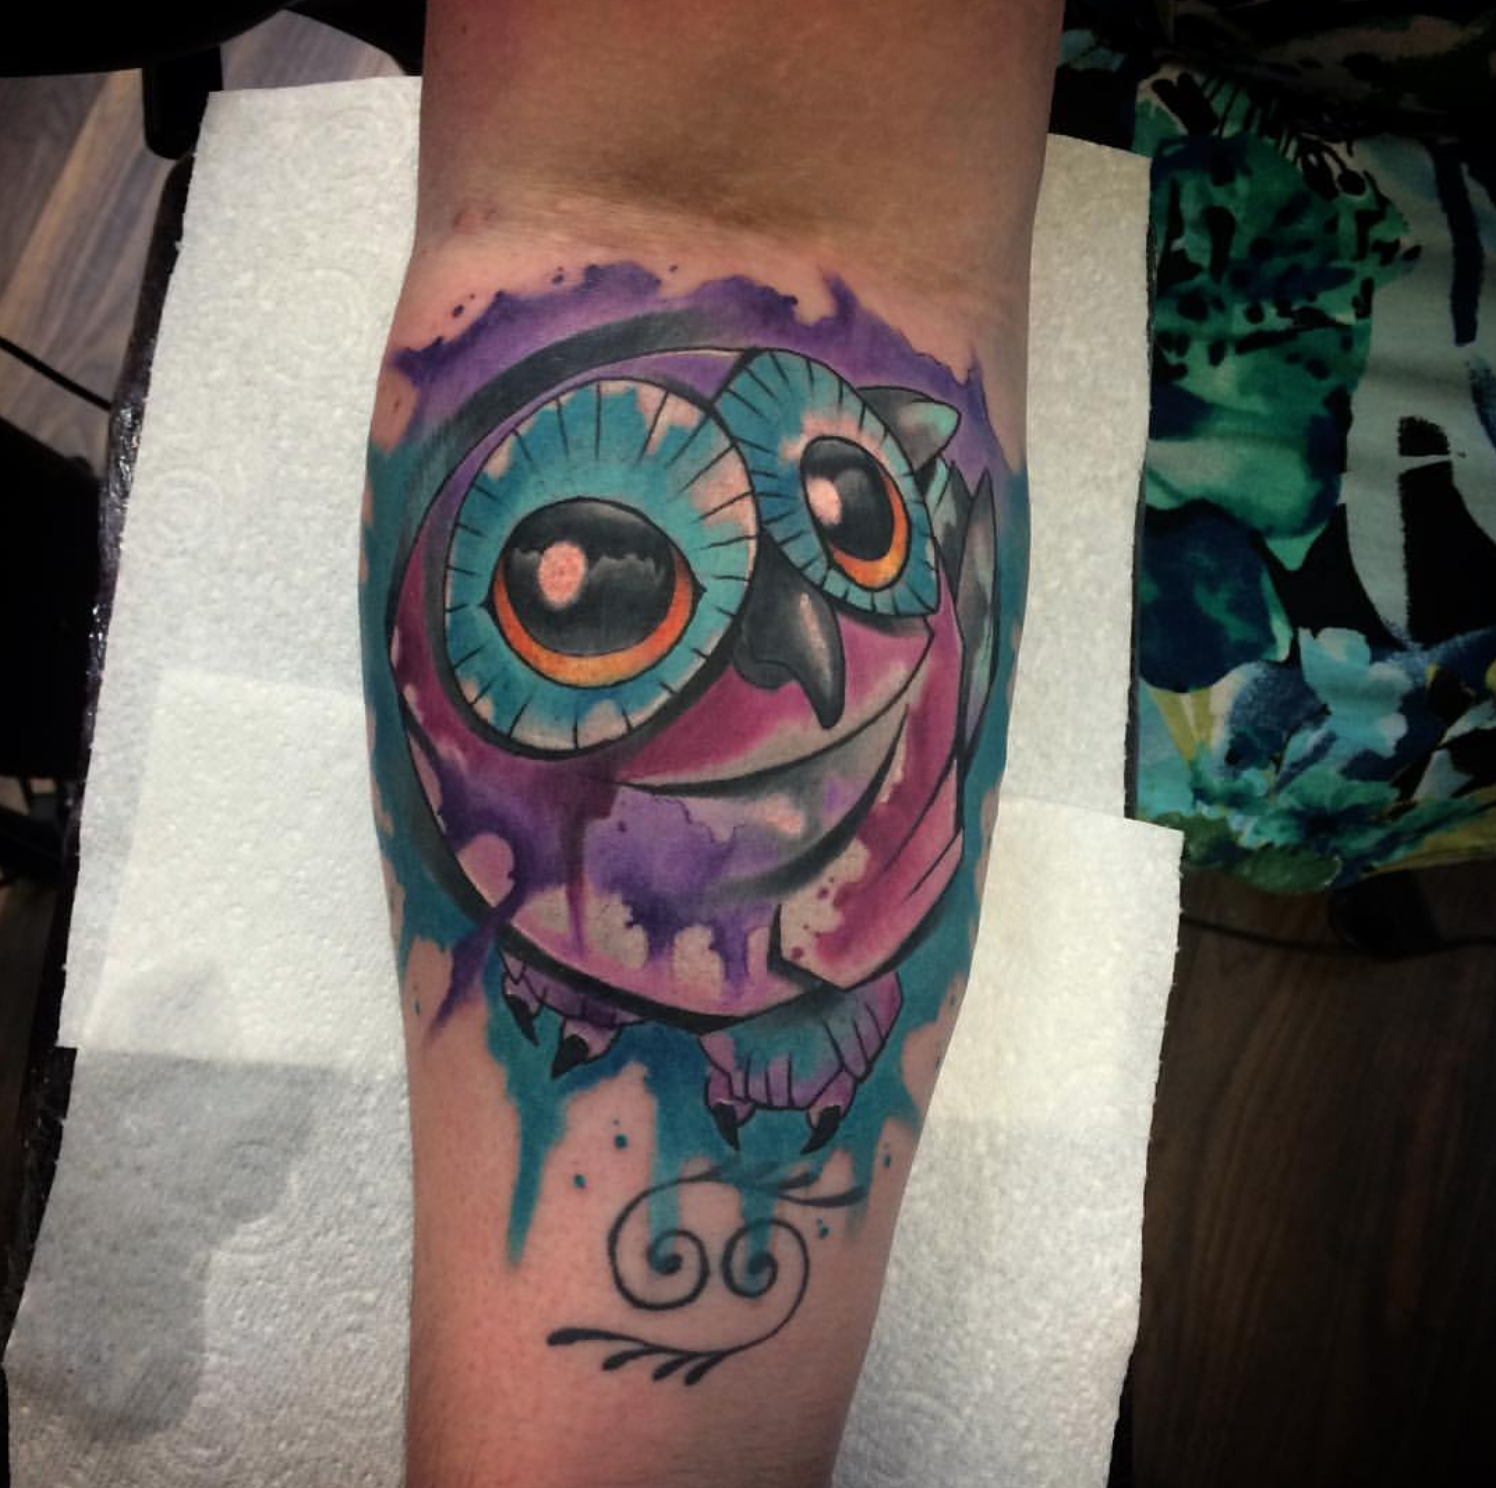 piink-tattoo-piercing-emil-tattoostudio-basel